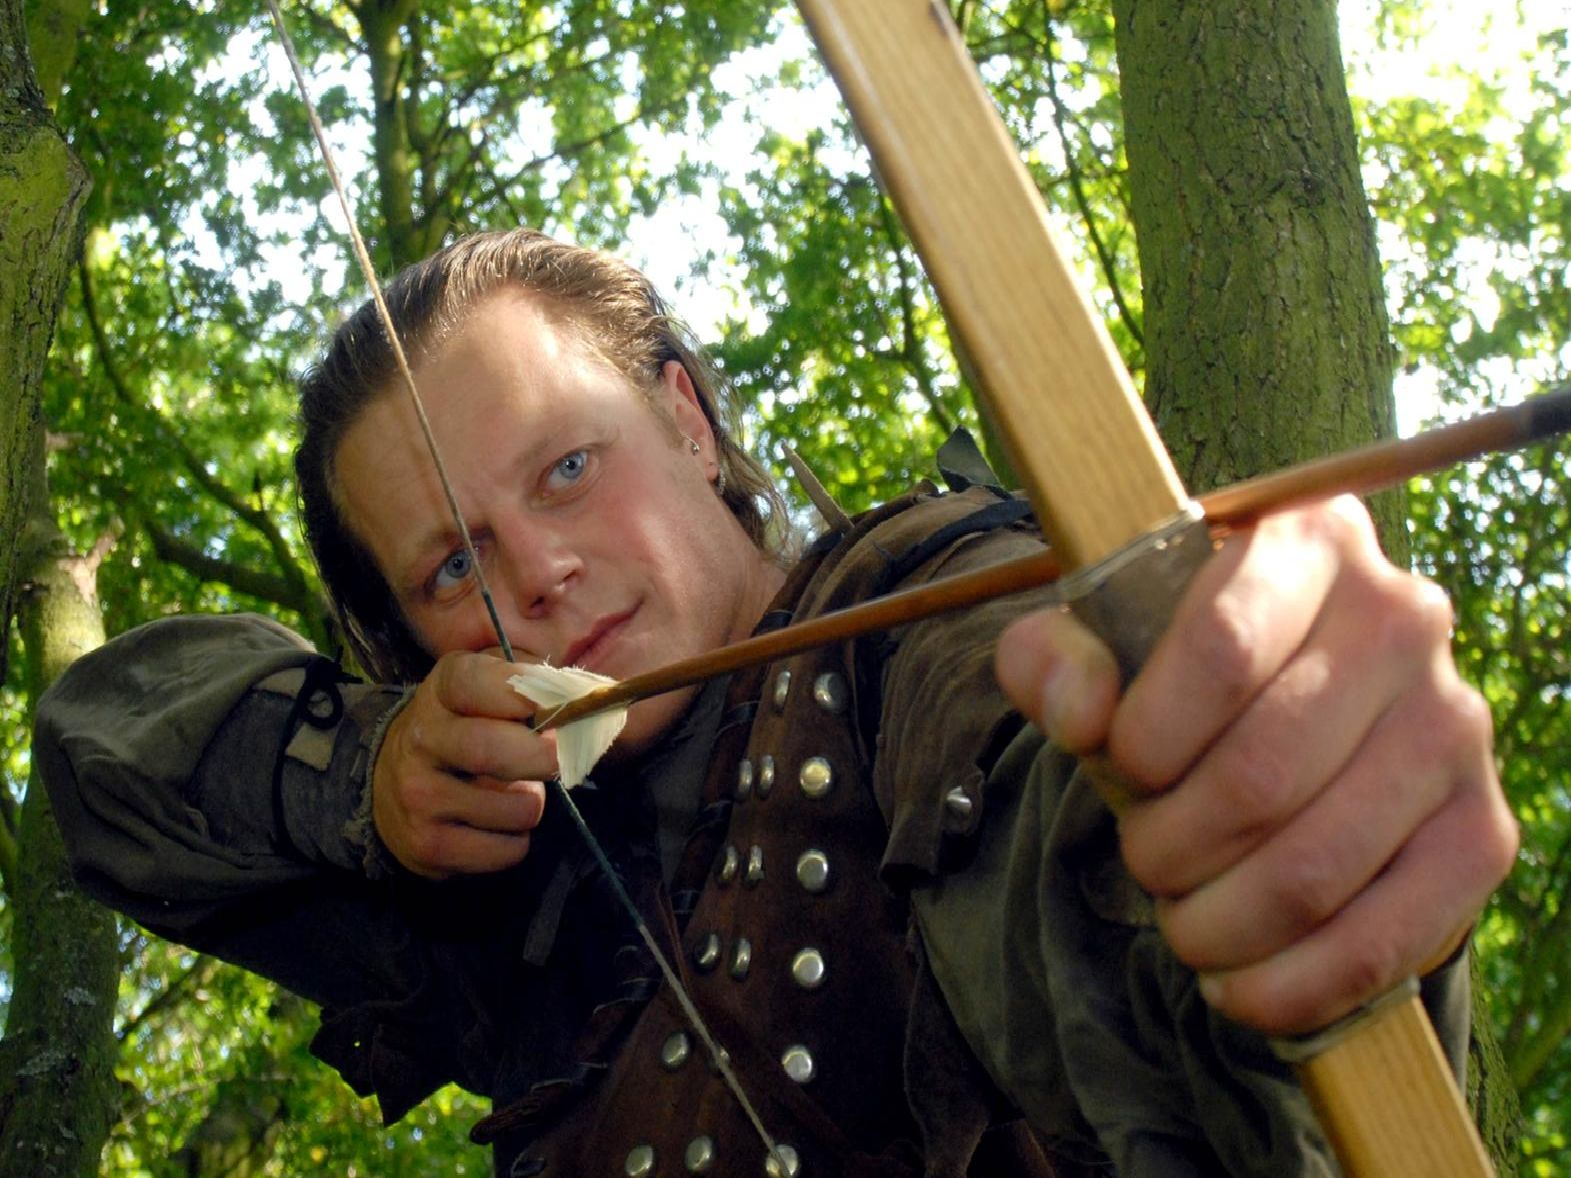 The outlaw Robin Hood, one of Nottinghamshire's most famous sons